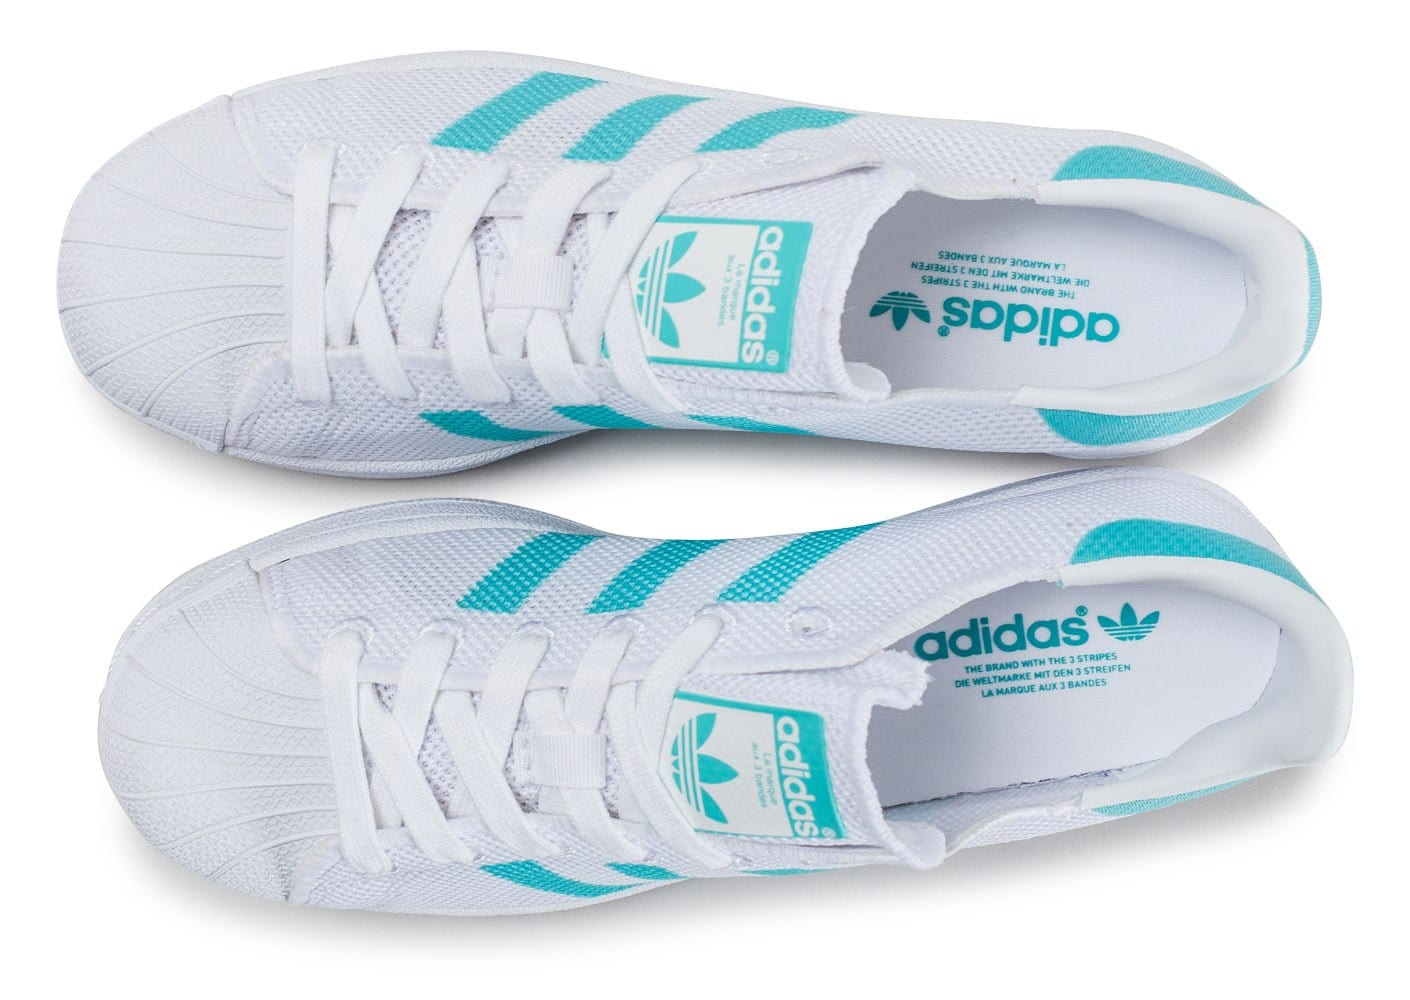 adidas Superstar Mesh blanche et turquoise Chaussures